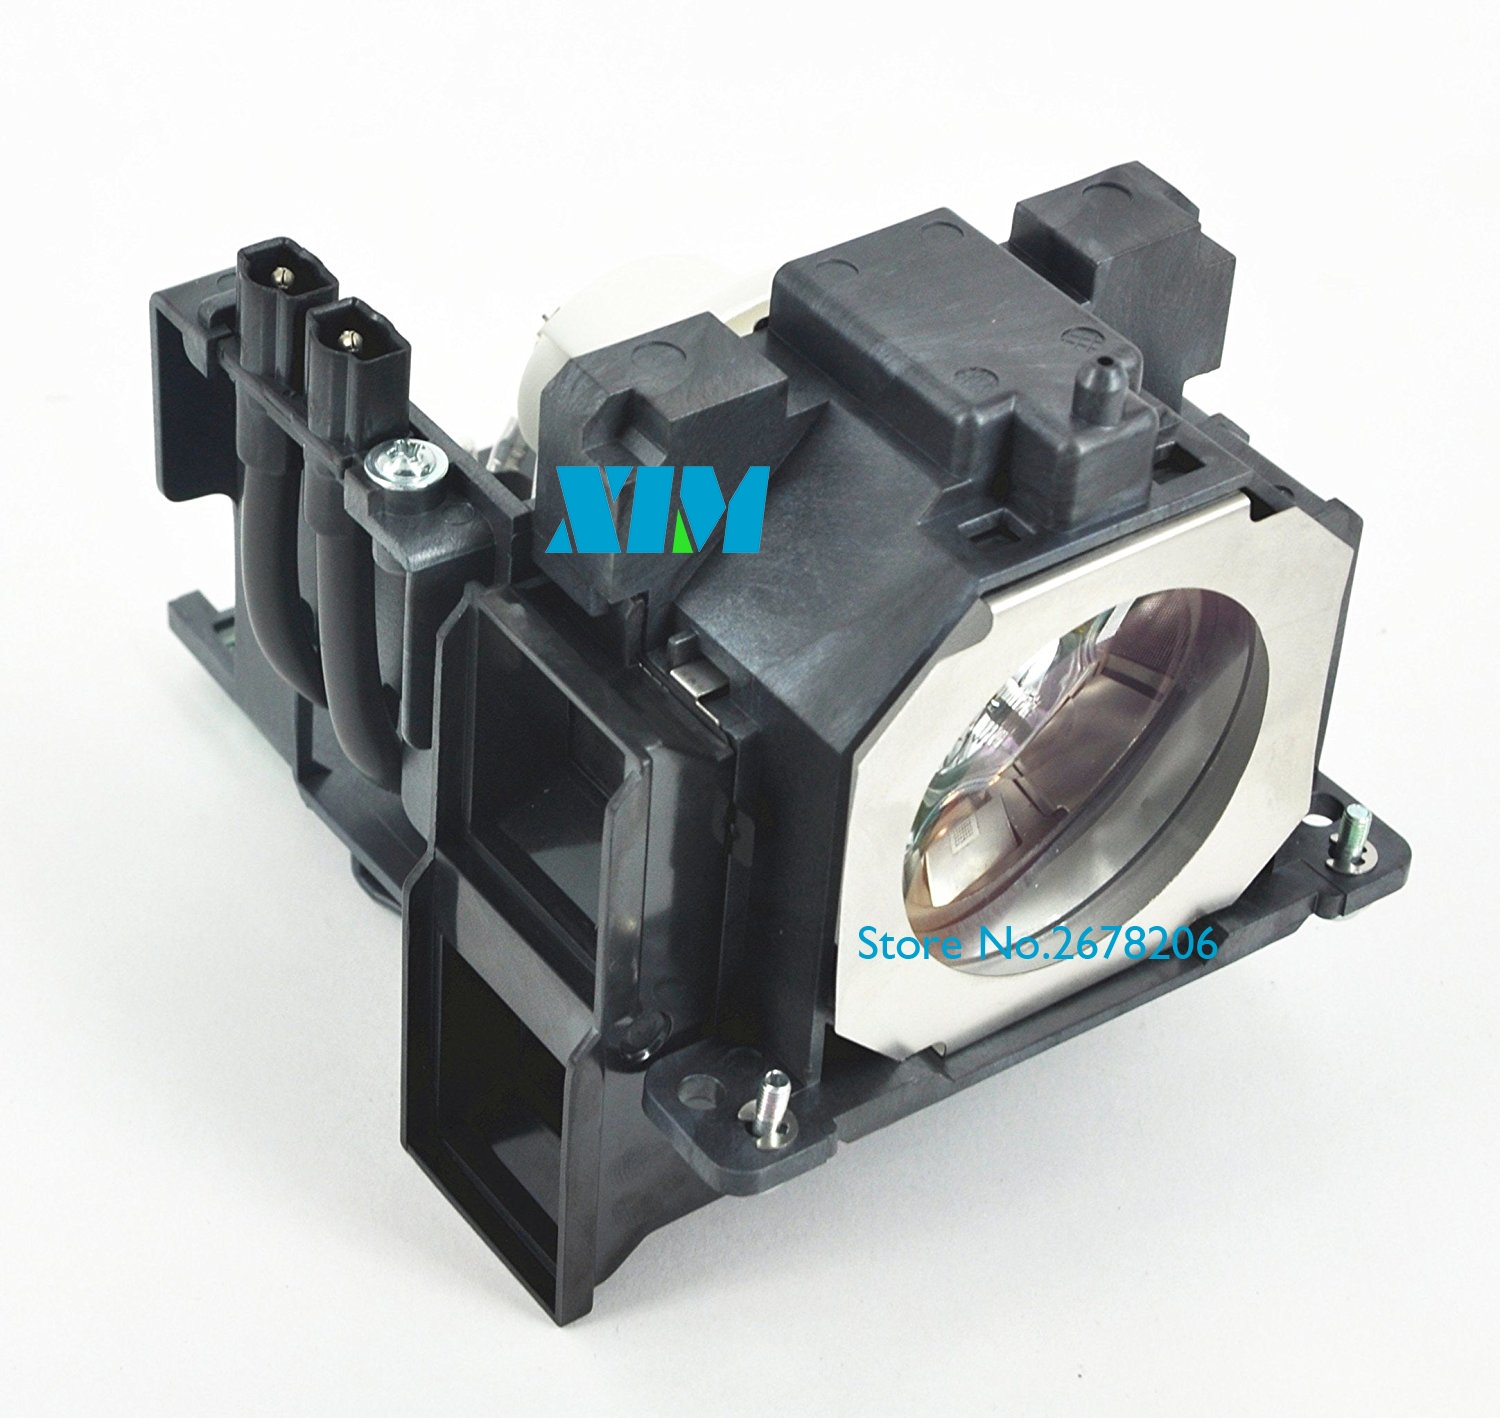 цена на Free Shipping ET-LAE300C ET-LAE300  Projector lamp with housing for Panasonic PT-EX510 PT-EZ580 PT-EX610 PT-SLZ77C/CL PT-Z770ZL